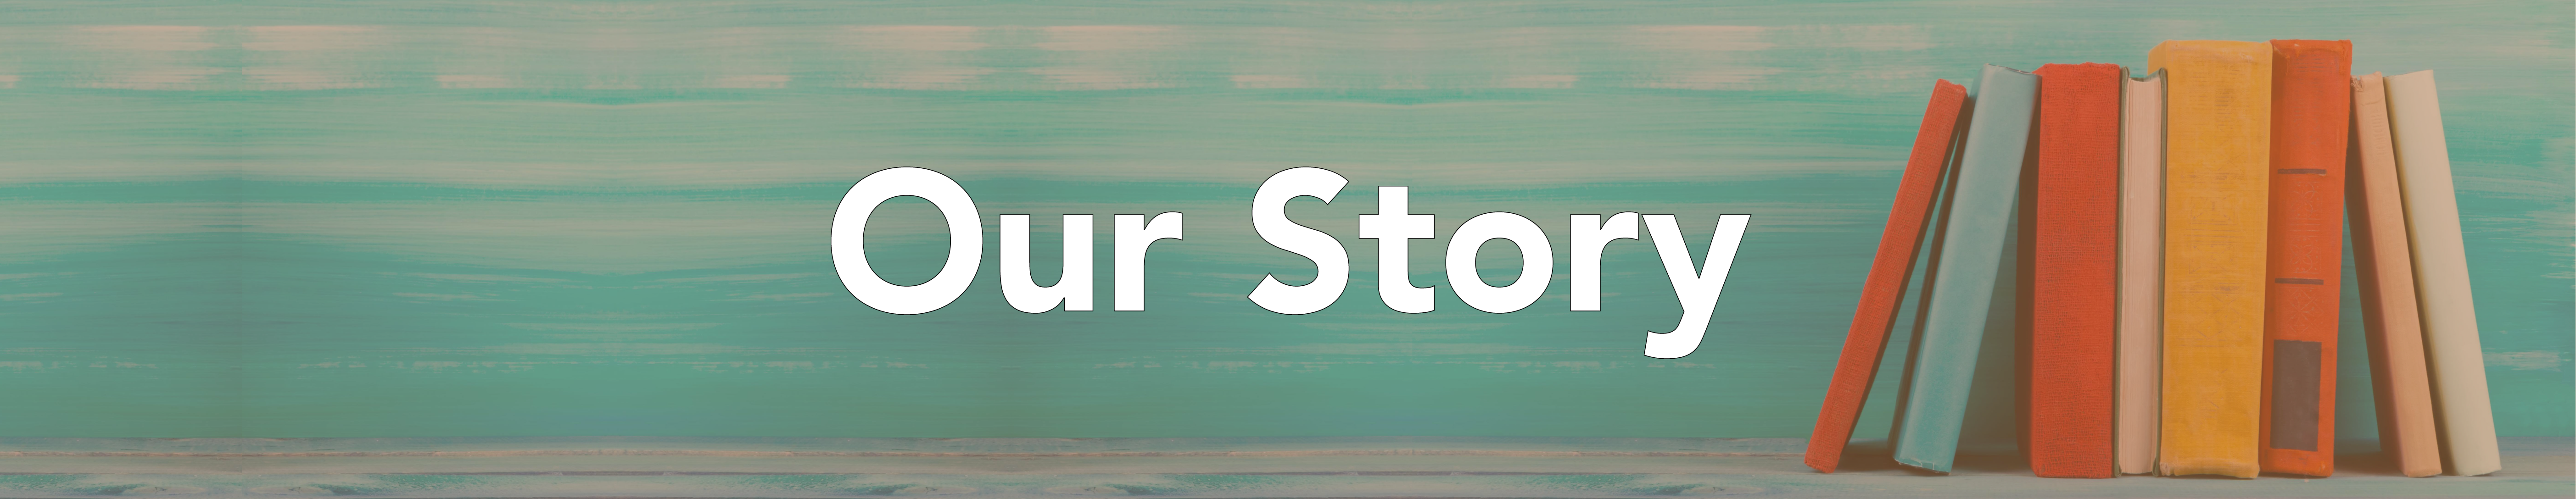 marketing consulting firms Our Story our story banner 01